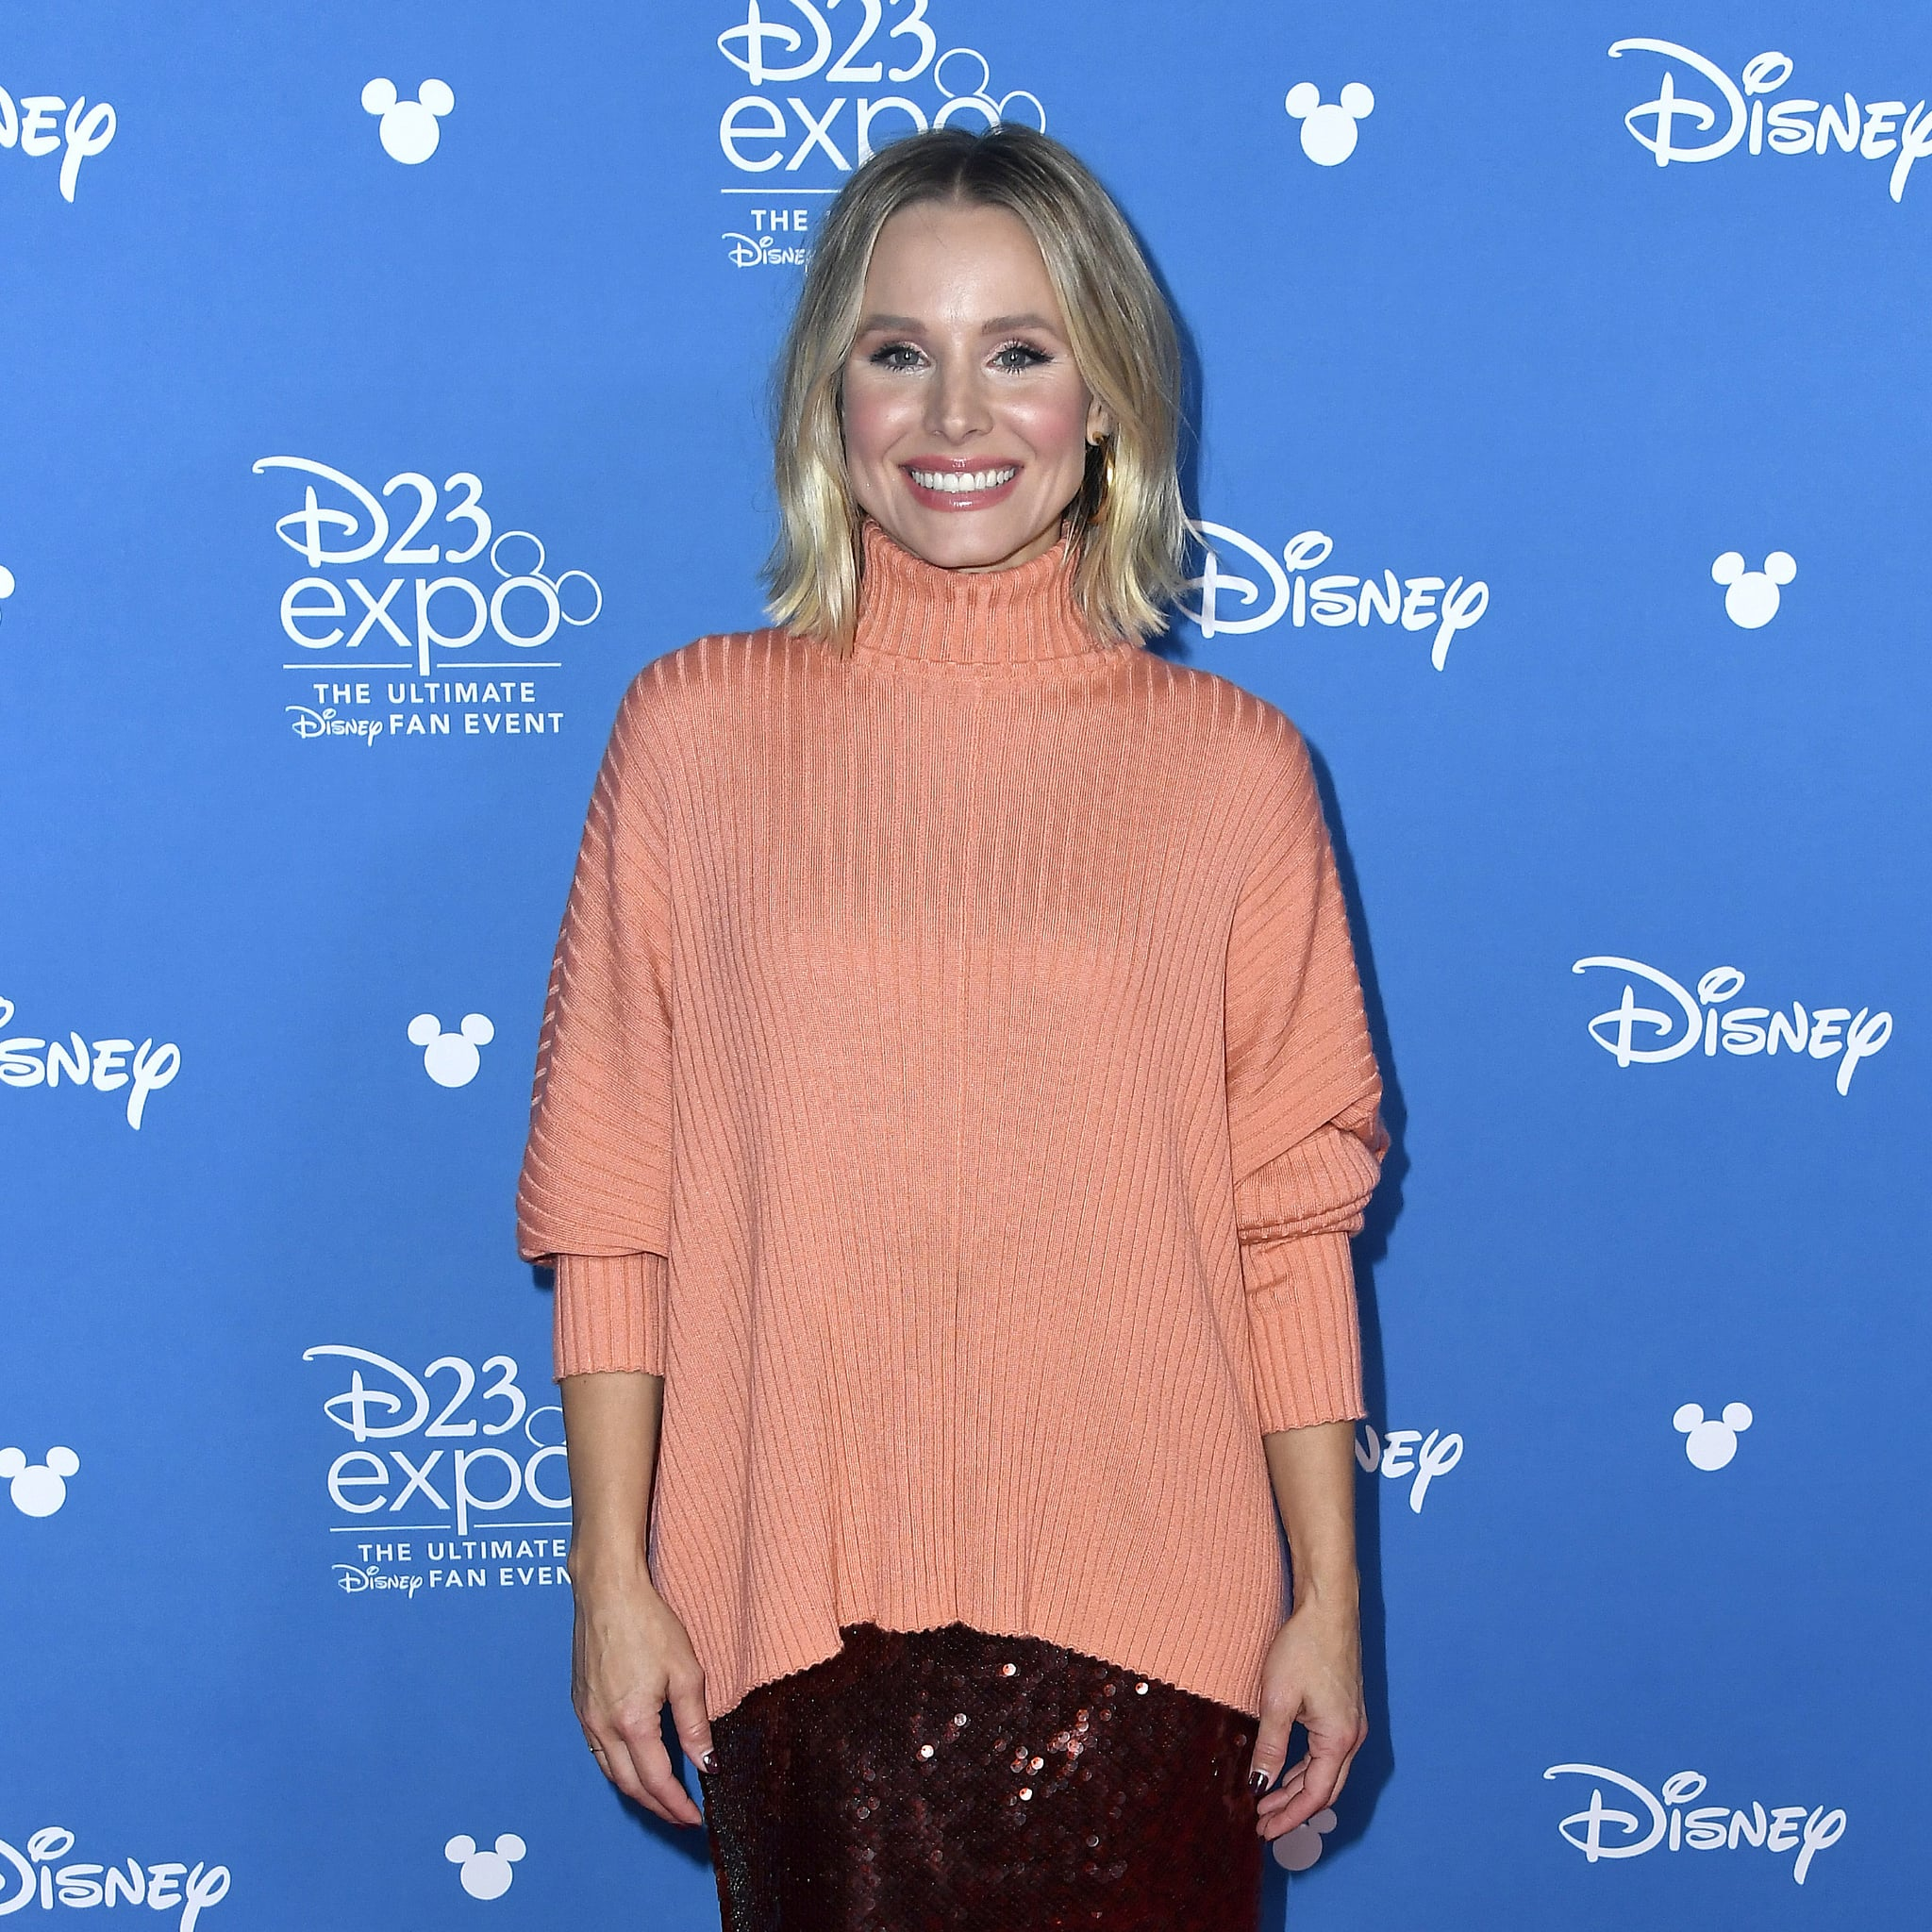 ANAHEIM, CALIFORNIA - AUGUST 24: Kristen Bell attends Go Behind The Scenes with Walt Disney Studios during D23 Expo 2019 at Anaheim Convention Centre on August 24, 2019 in Anaheim, California. (Photo by Frazer Harrison/Getty Images)